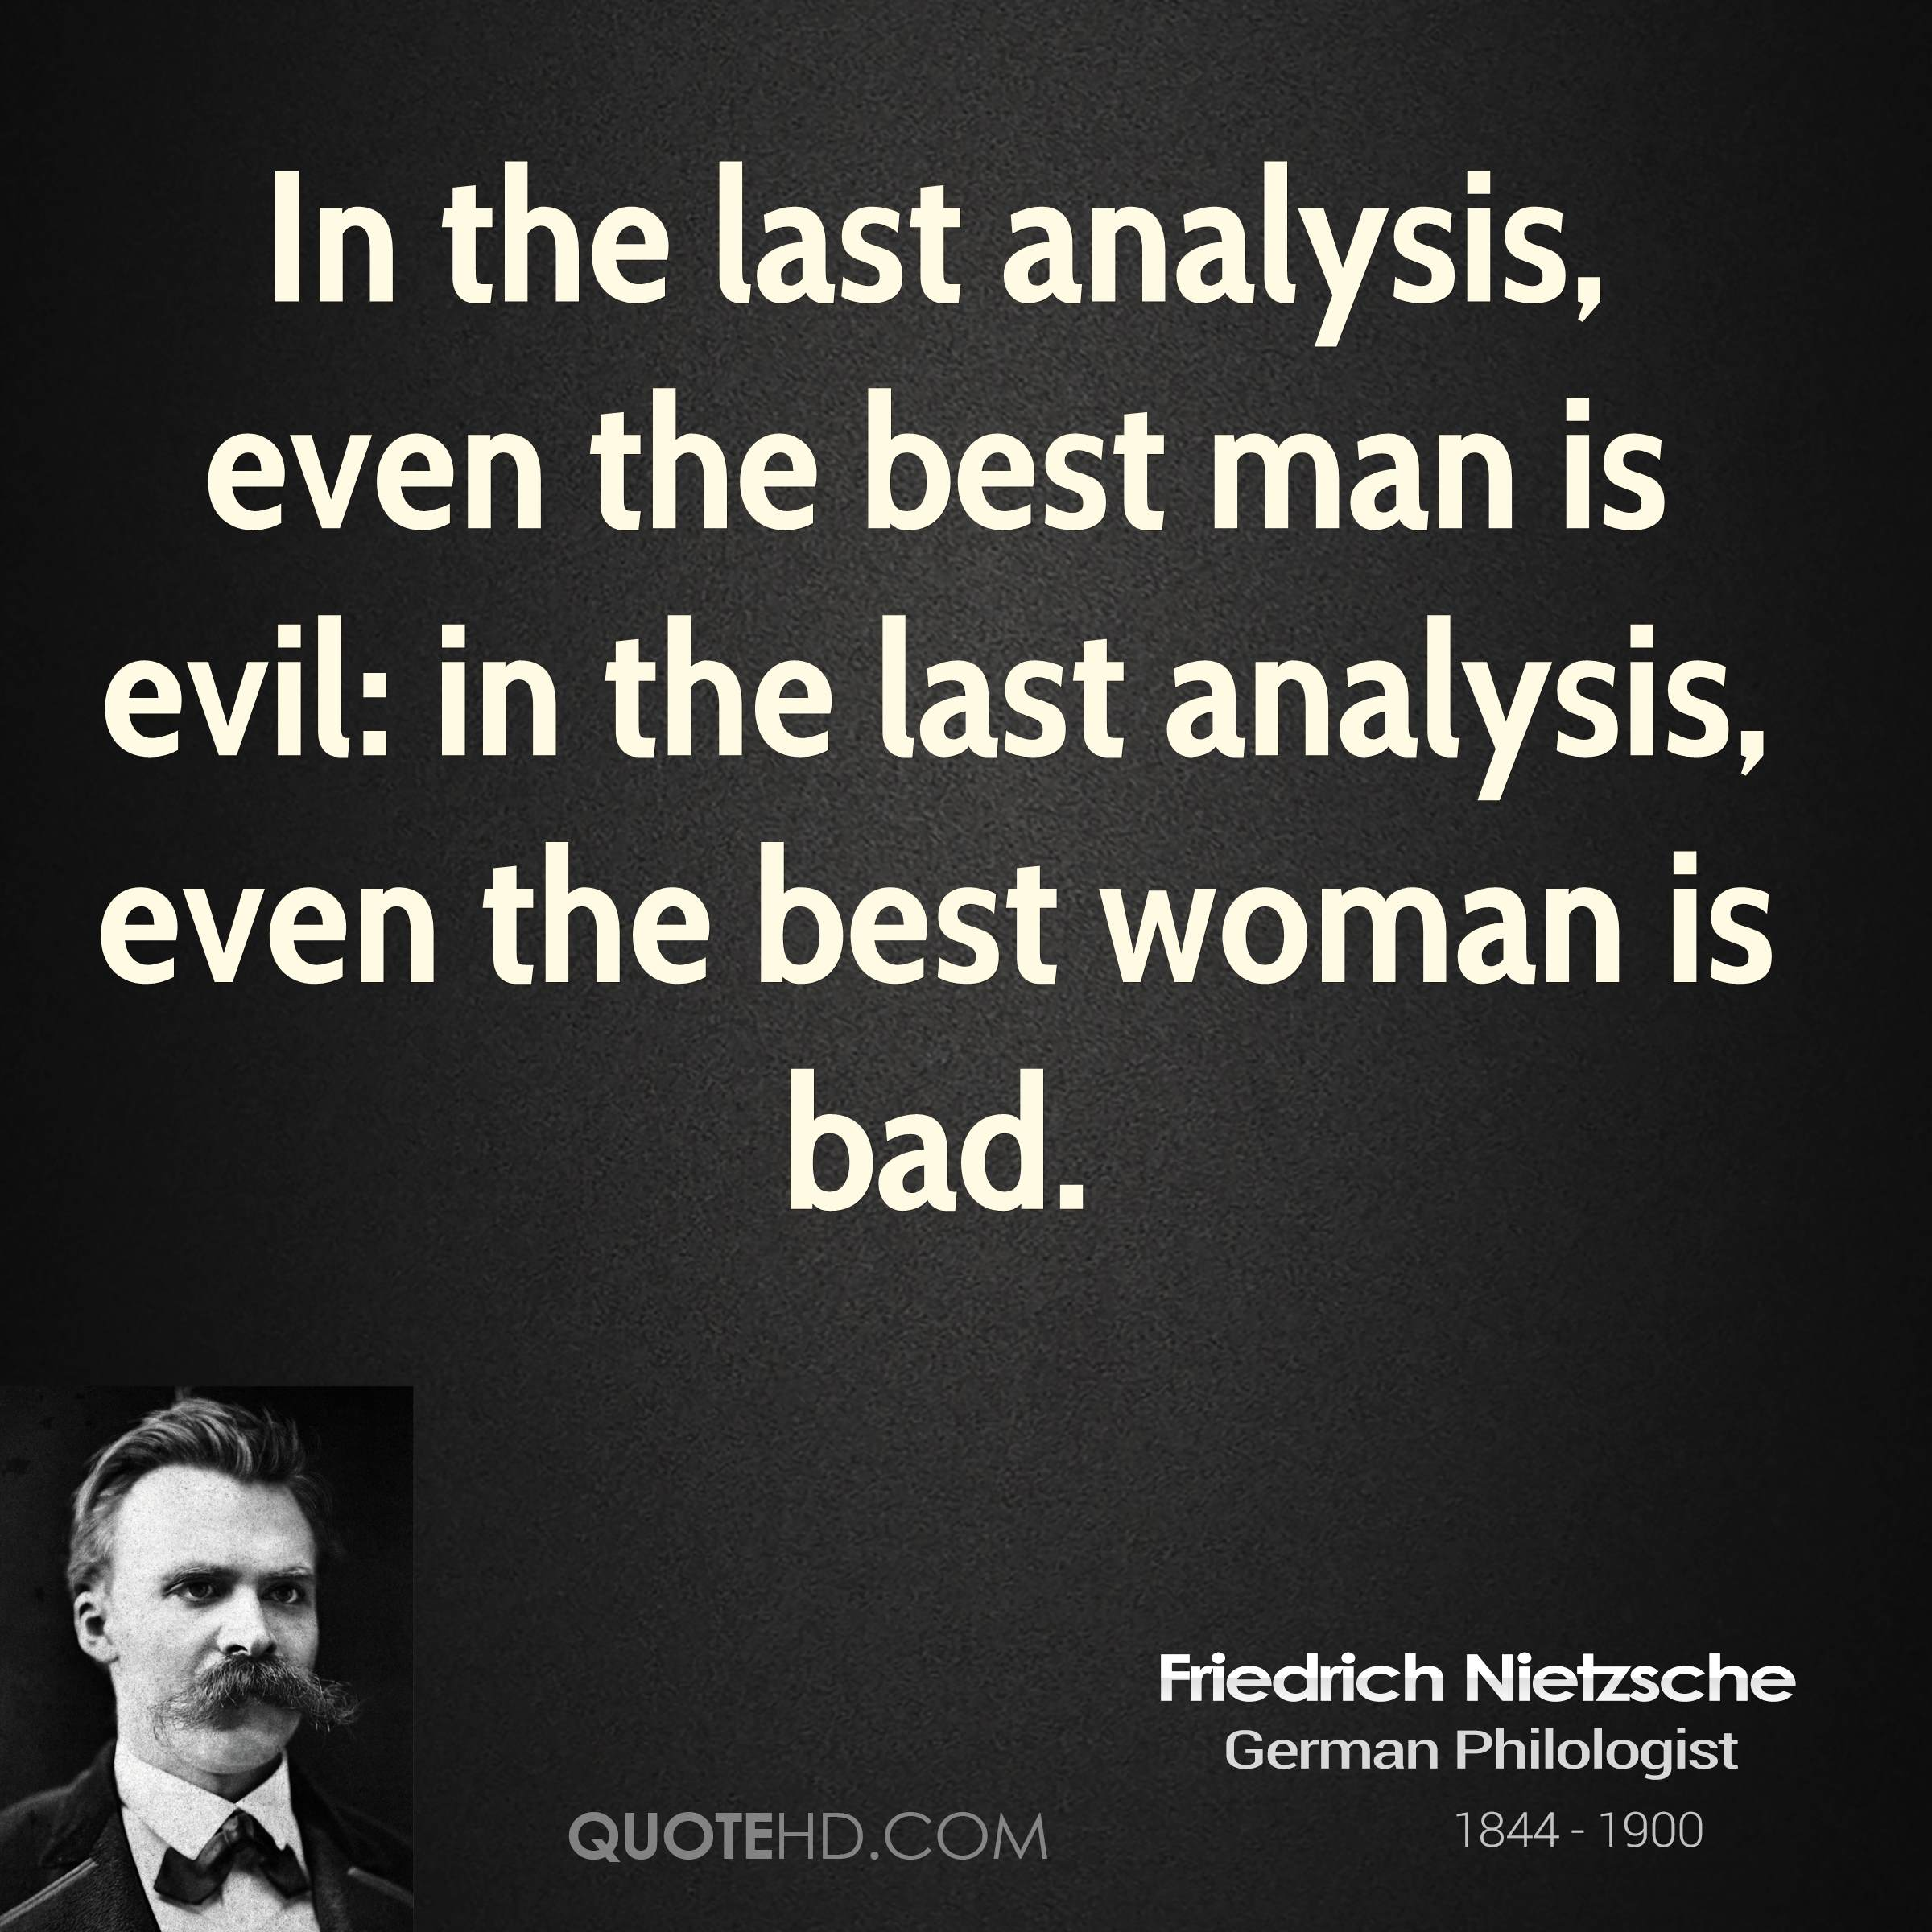 an analysis of nietzsche and his philosophies Written by don berry, narrated by macatcom download the app and start listening to a macat analysis of friedrich nietzsche's beyond good and evil: prelude to a philosophy of the future.